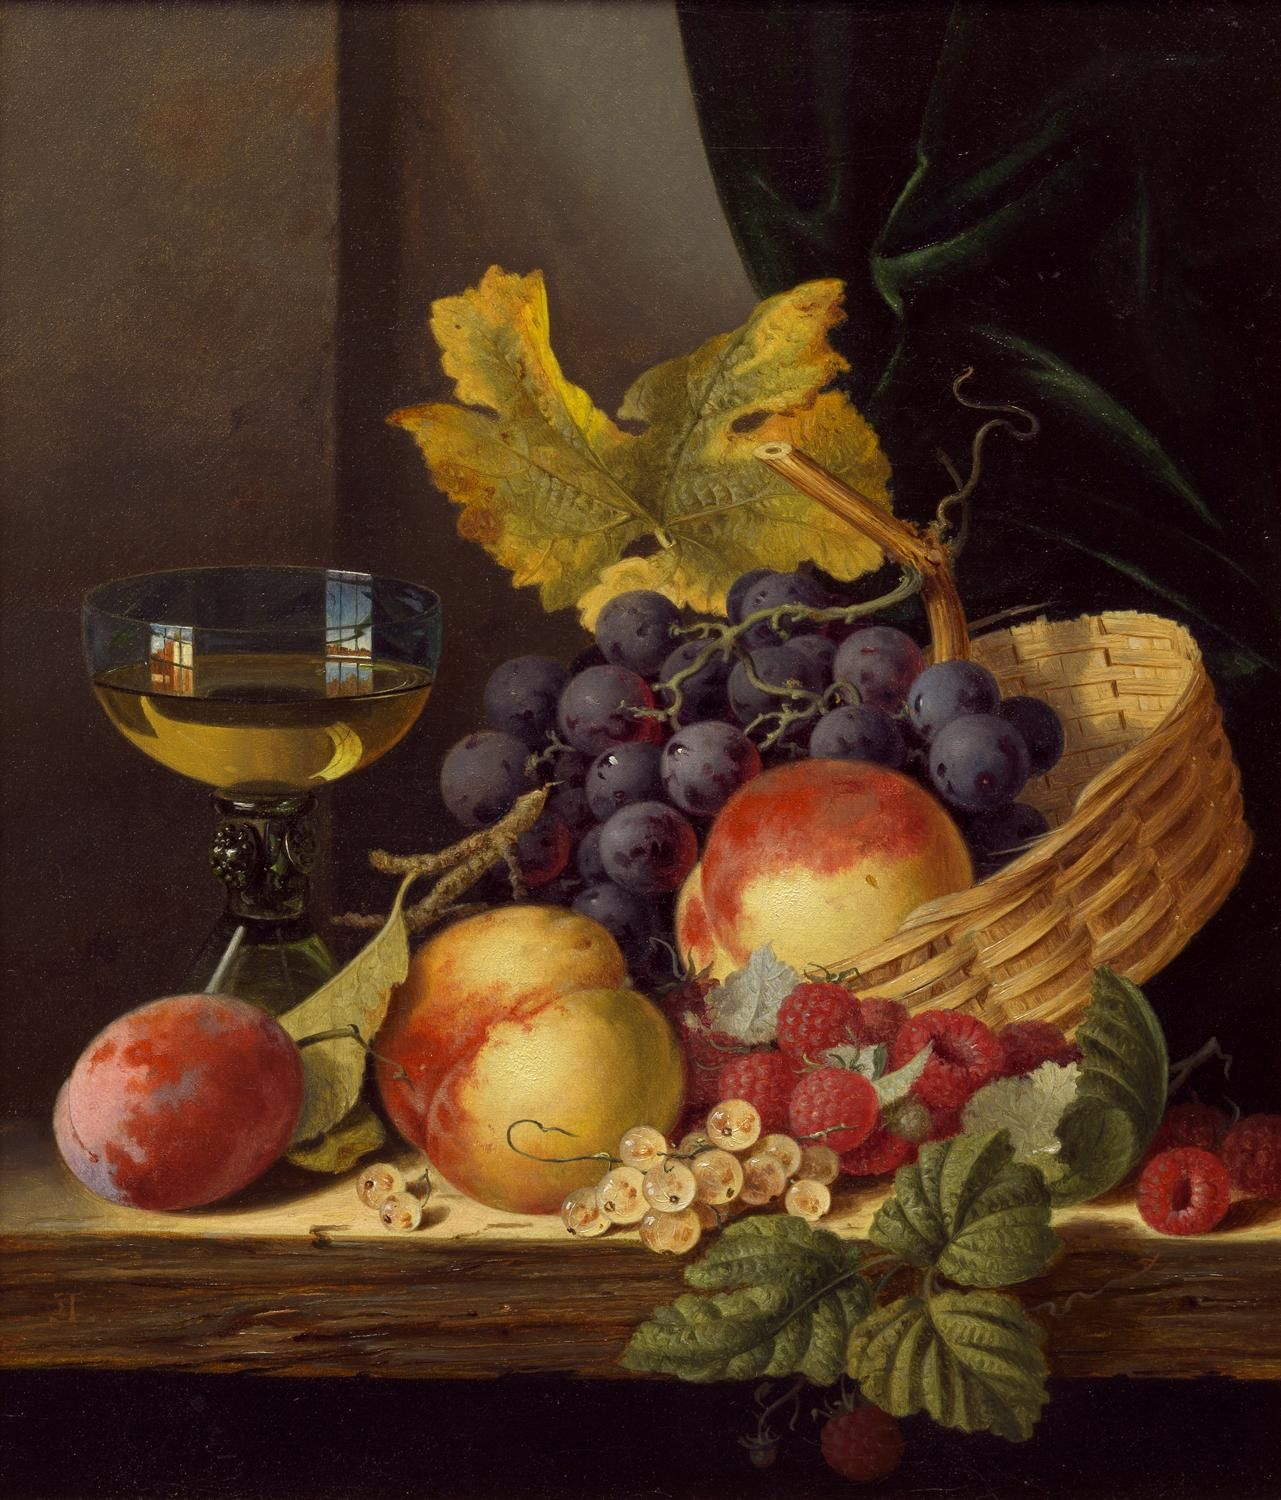 EDWARD LADELL -  A basket of peaches and grapes with raspberries and a roemer on a wooden ledge, Oil on canvas 14 x 12 in (35.6 x 30.5 cm)